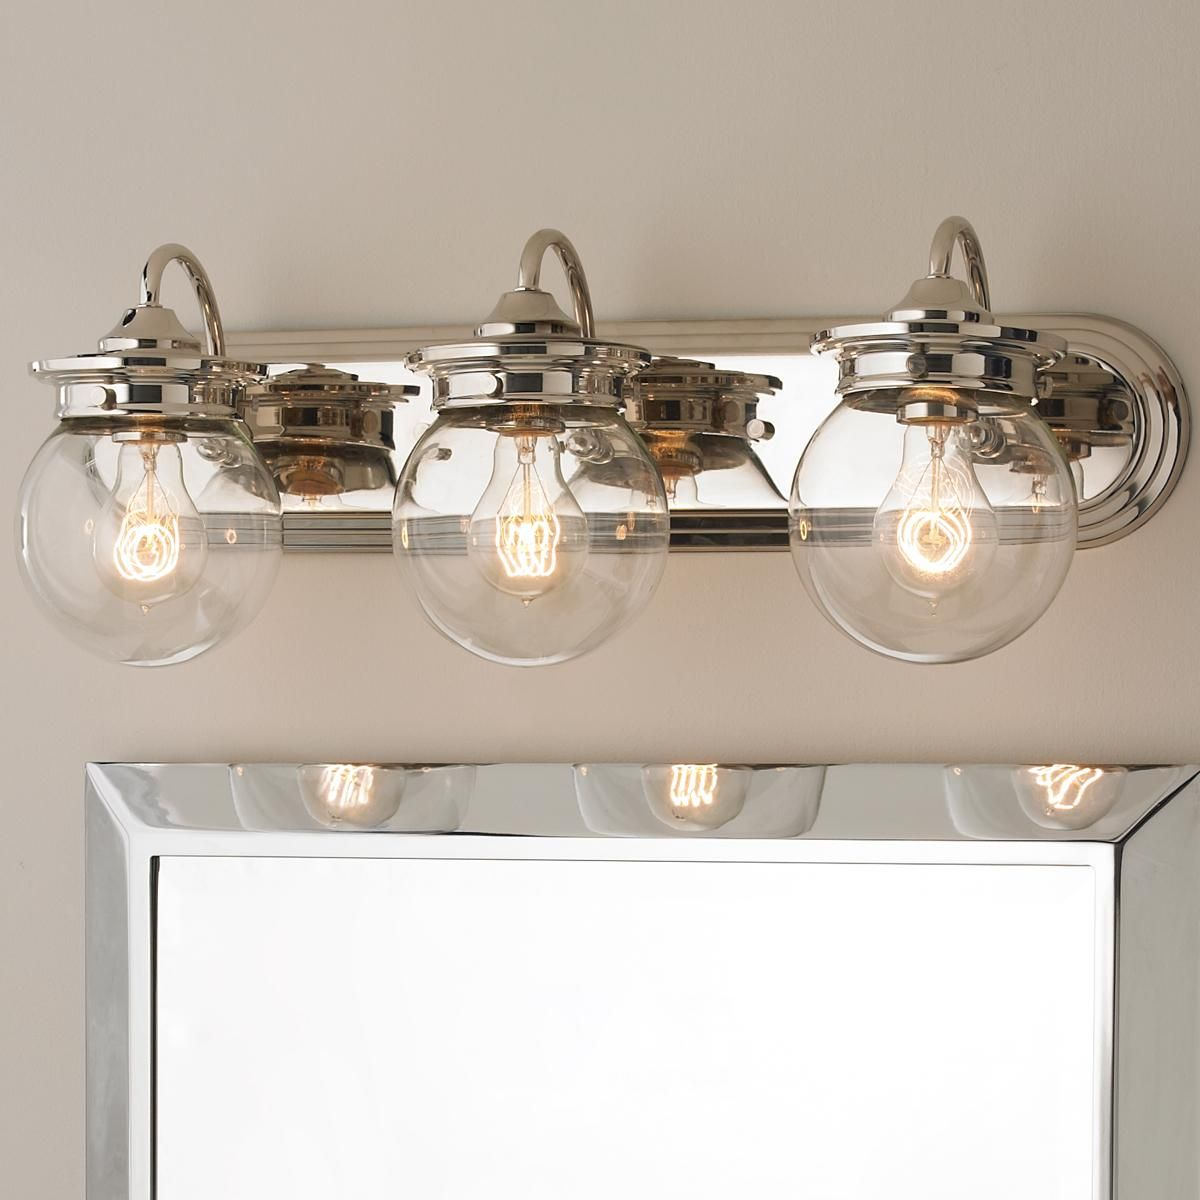 traditional bathroom lighting. Traditional Clear Glass Globe Bath Light - 3 Details Combine With A Modern Round Bathroom Lighting E